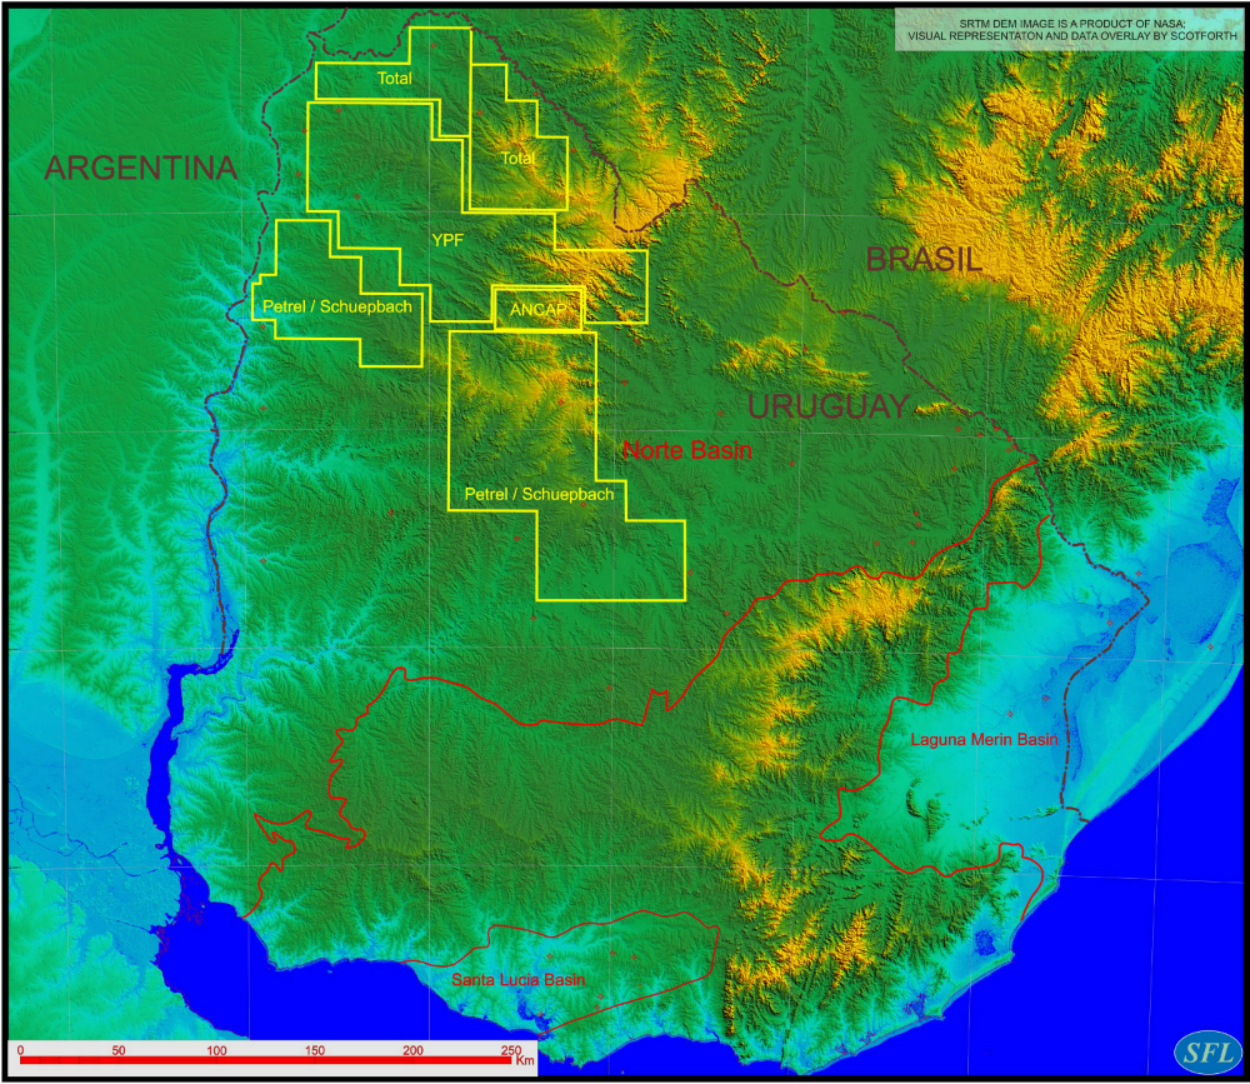 URUGUAY: Oil and Gas in the Norte Basin?